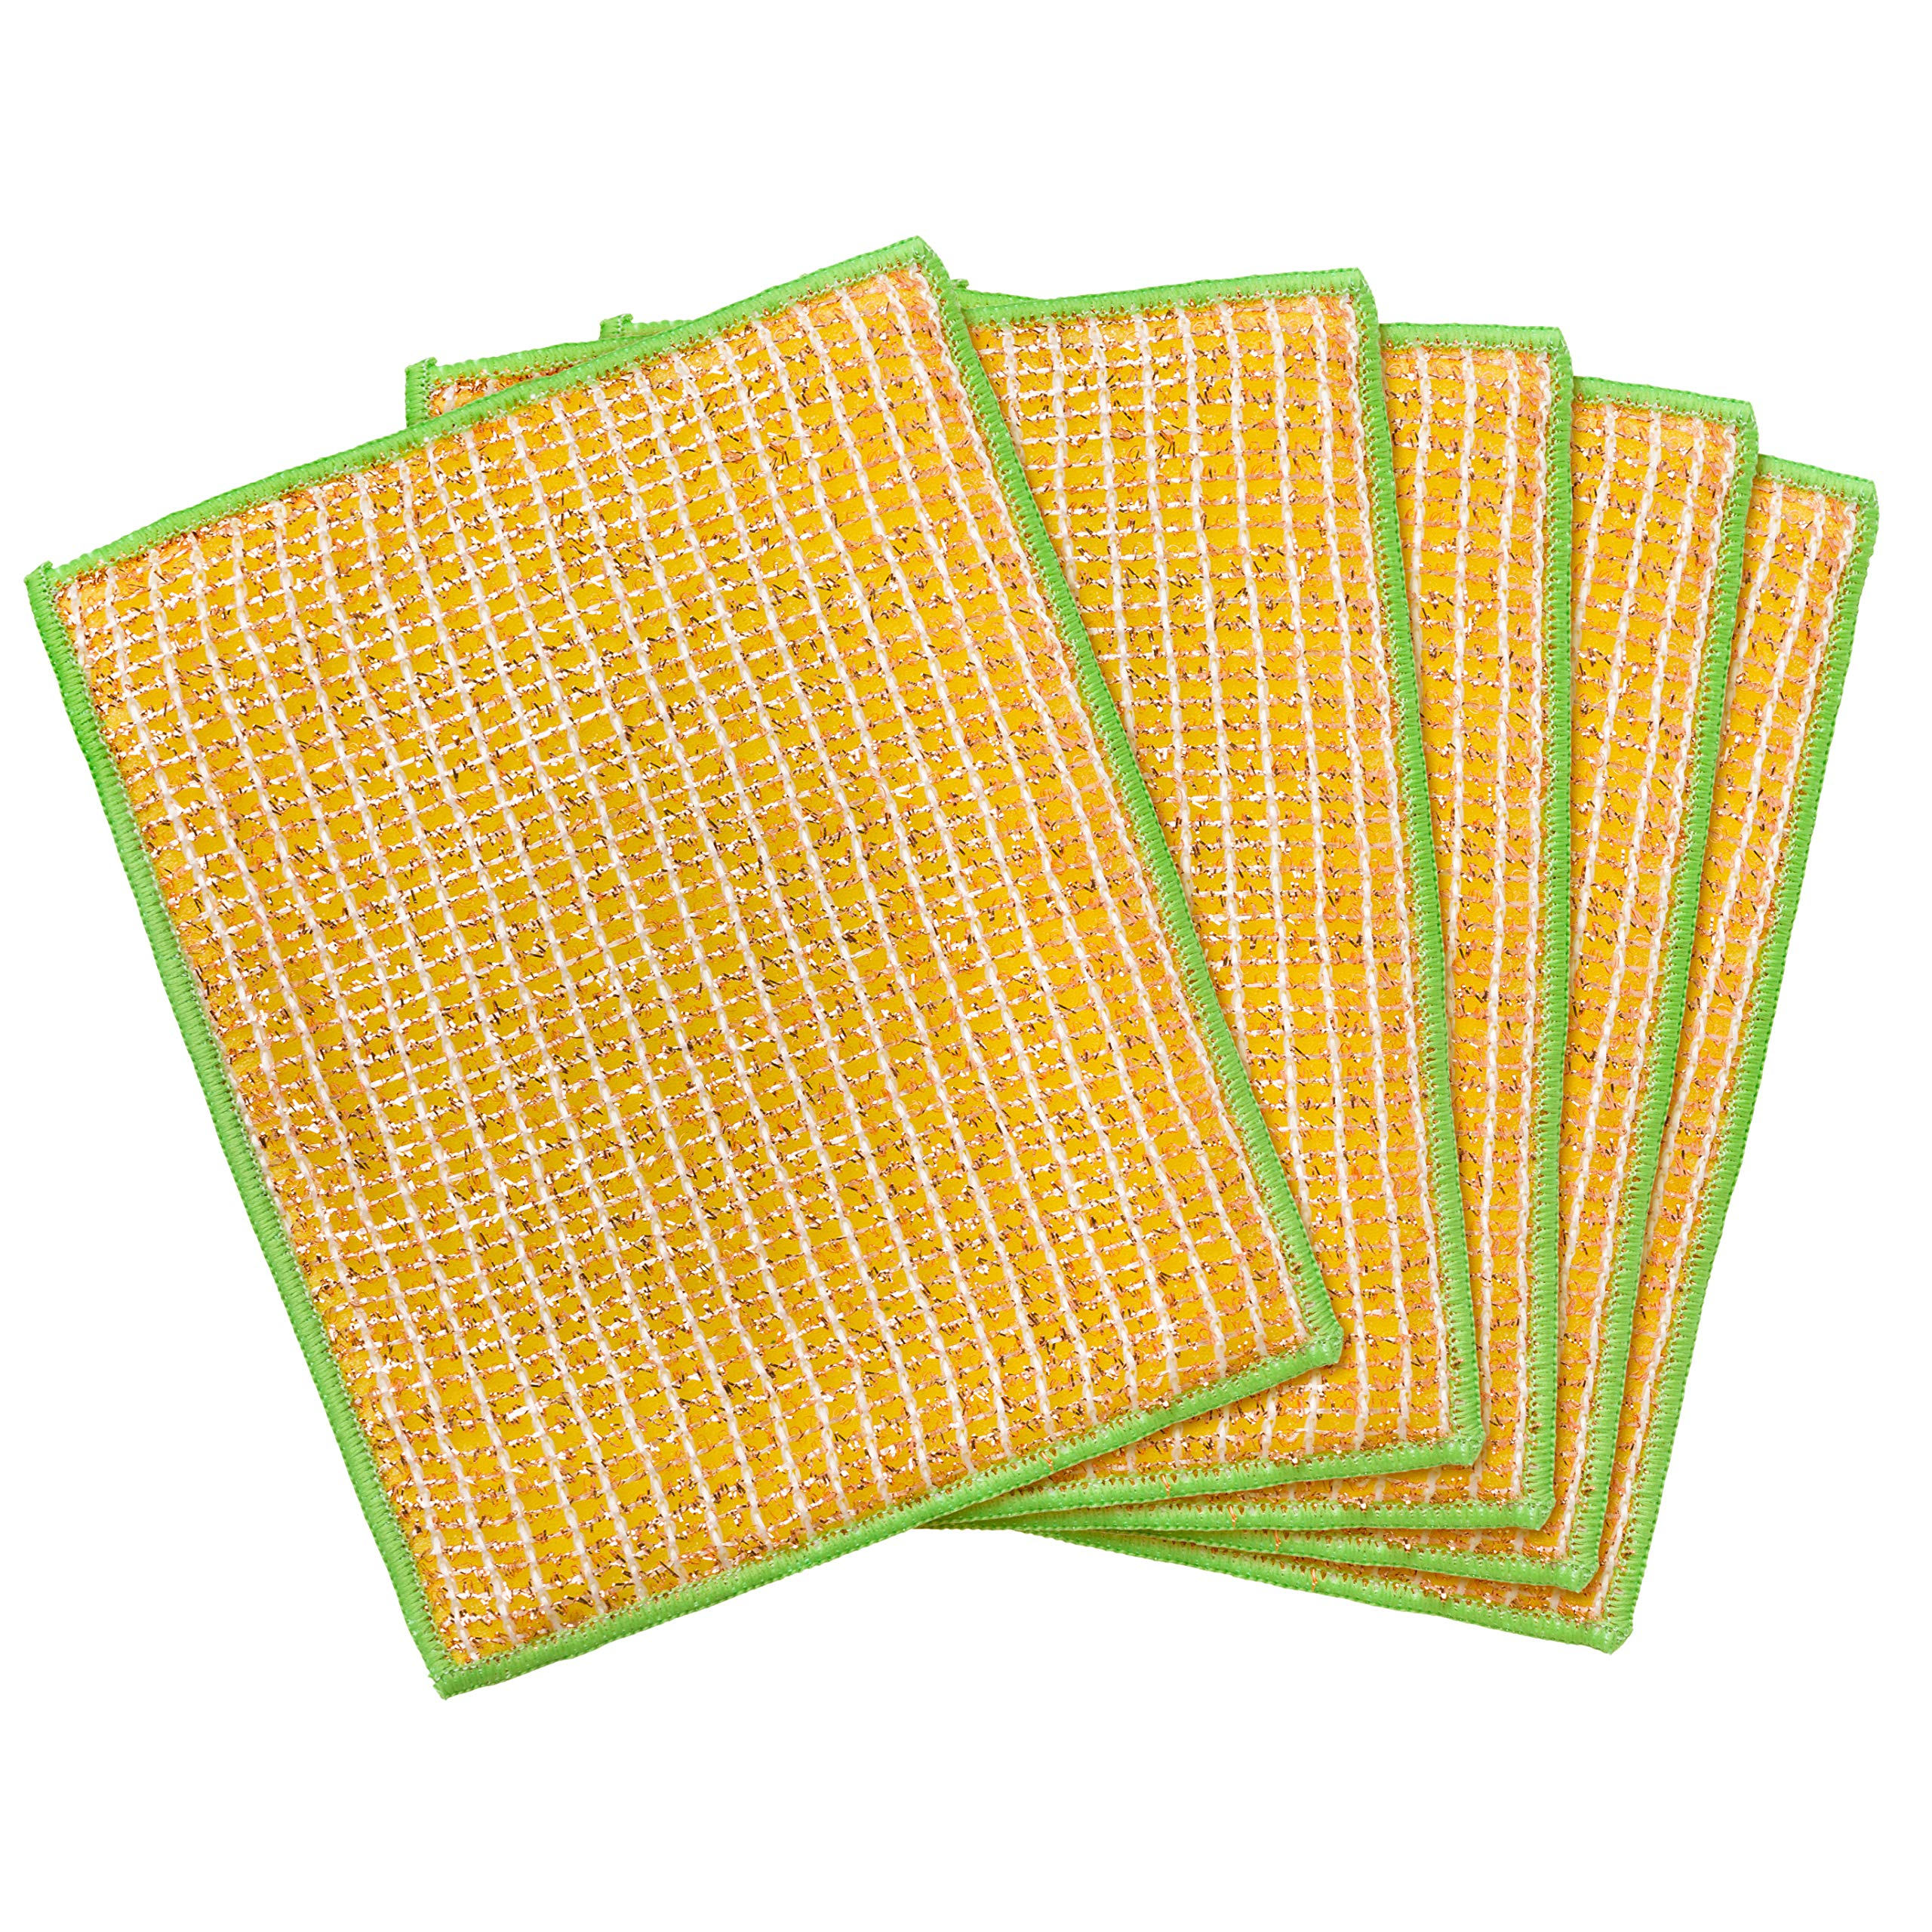 REDECKER Dual Sided Copper and Microfiber Cleaning Cloth, Set of 5, 7-3/4'' x 6'', Non-Abrasive Copper Effectively Scrubs, Absorbent Microfiber Wipes Surfaces Clean, Machine Washable, Made in Germany by REDECKER (Image #2)